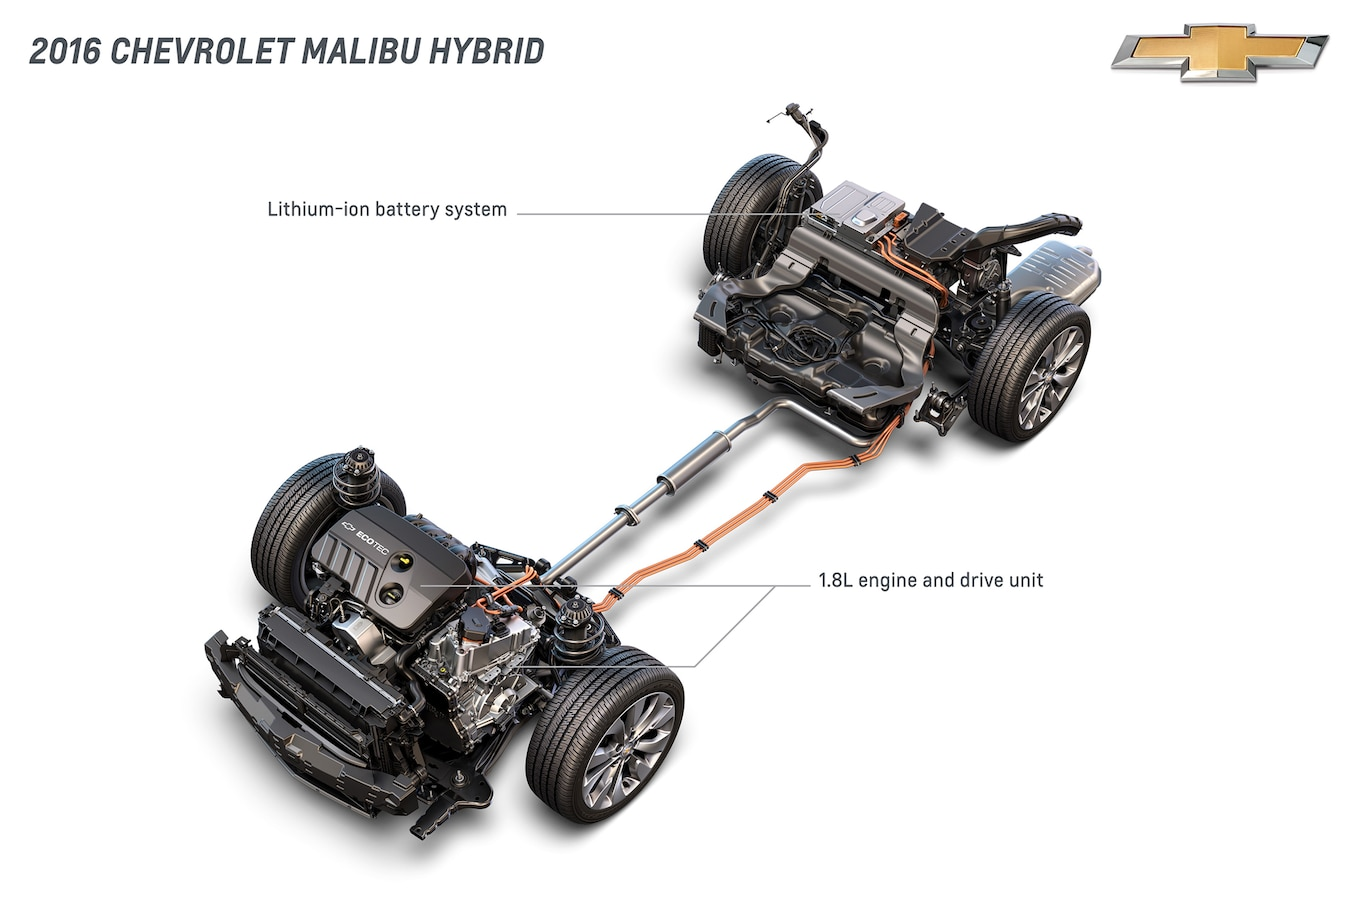 hight resolution of 2016 chevrolet malibu hybrid comes to new york estimated at 45 mpg malibu car engine diagram